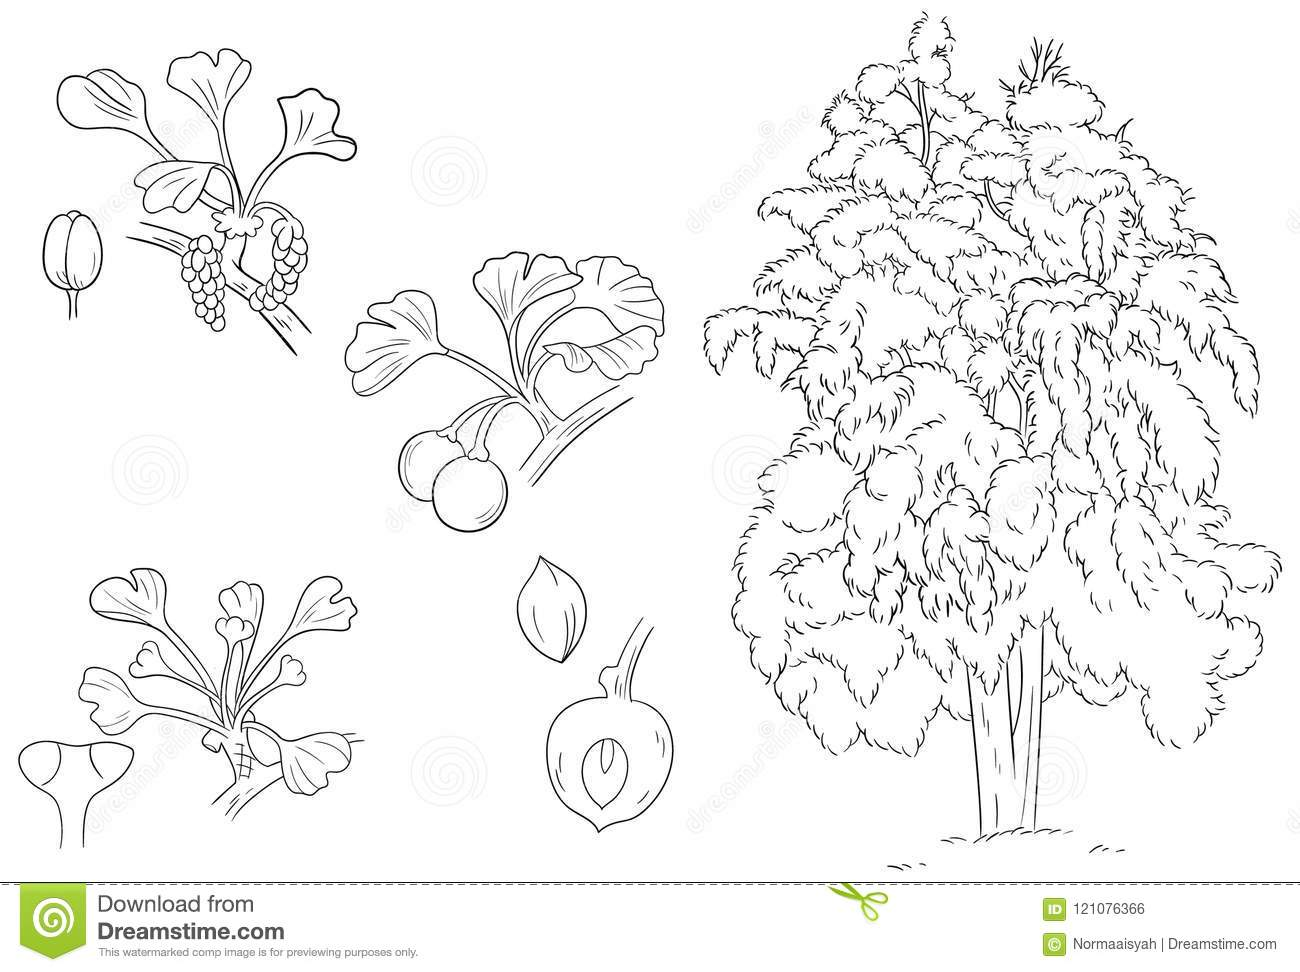 Ginkgo flower fruit leaves and plant outline and sketch